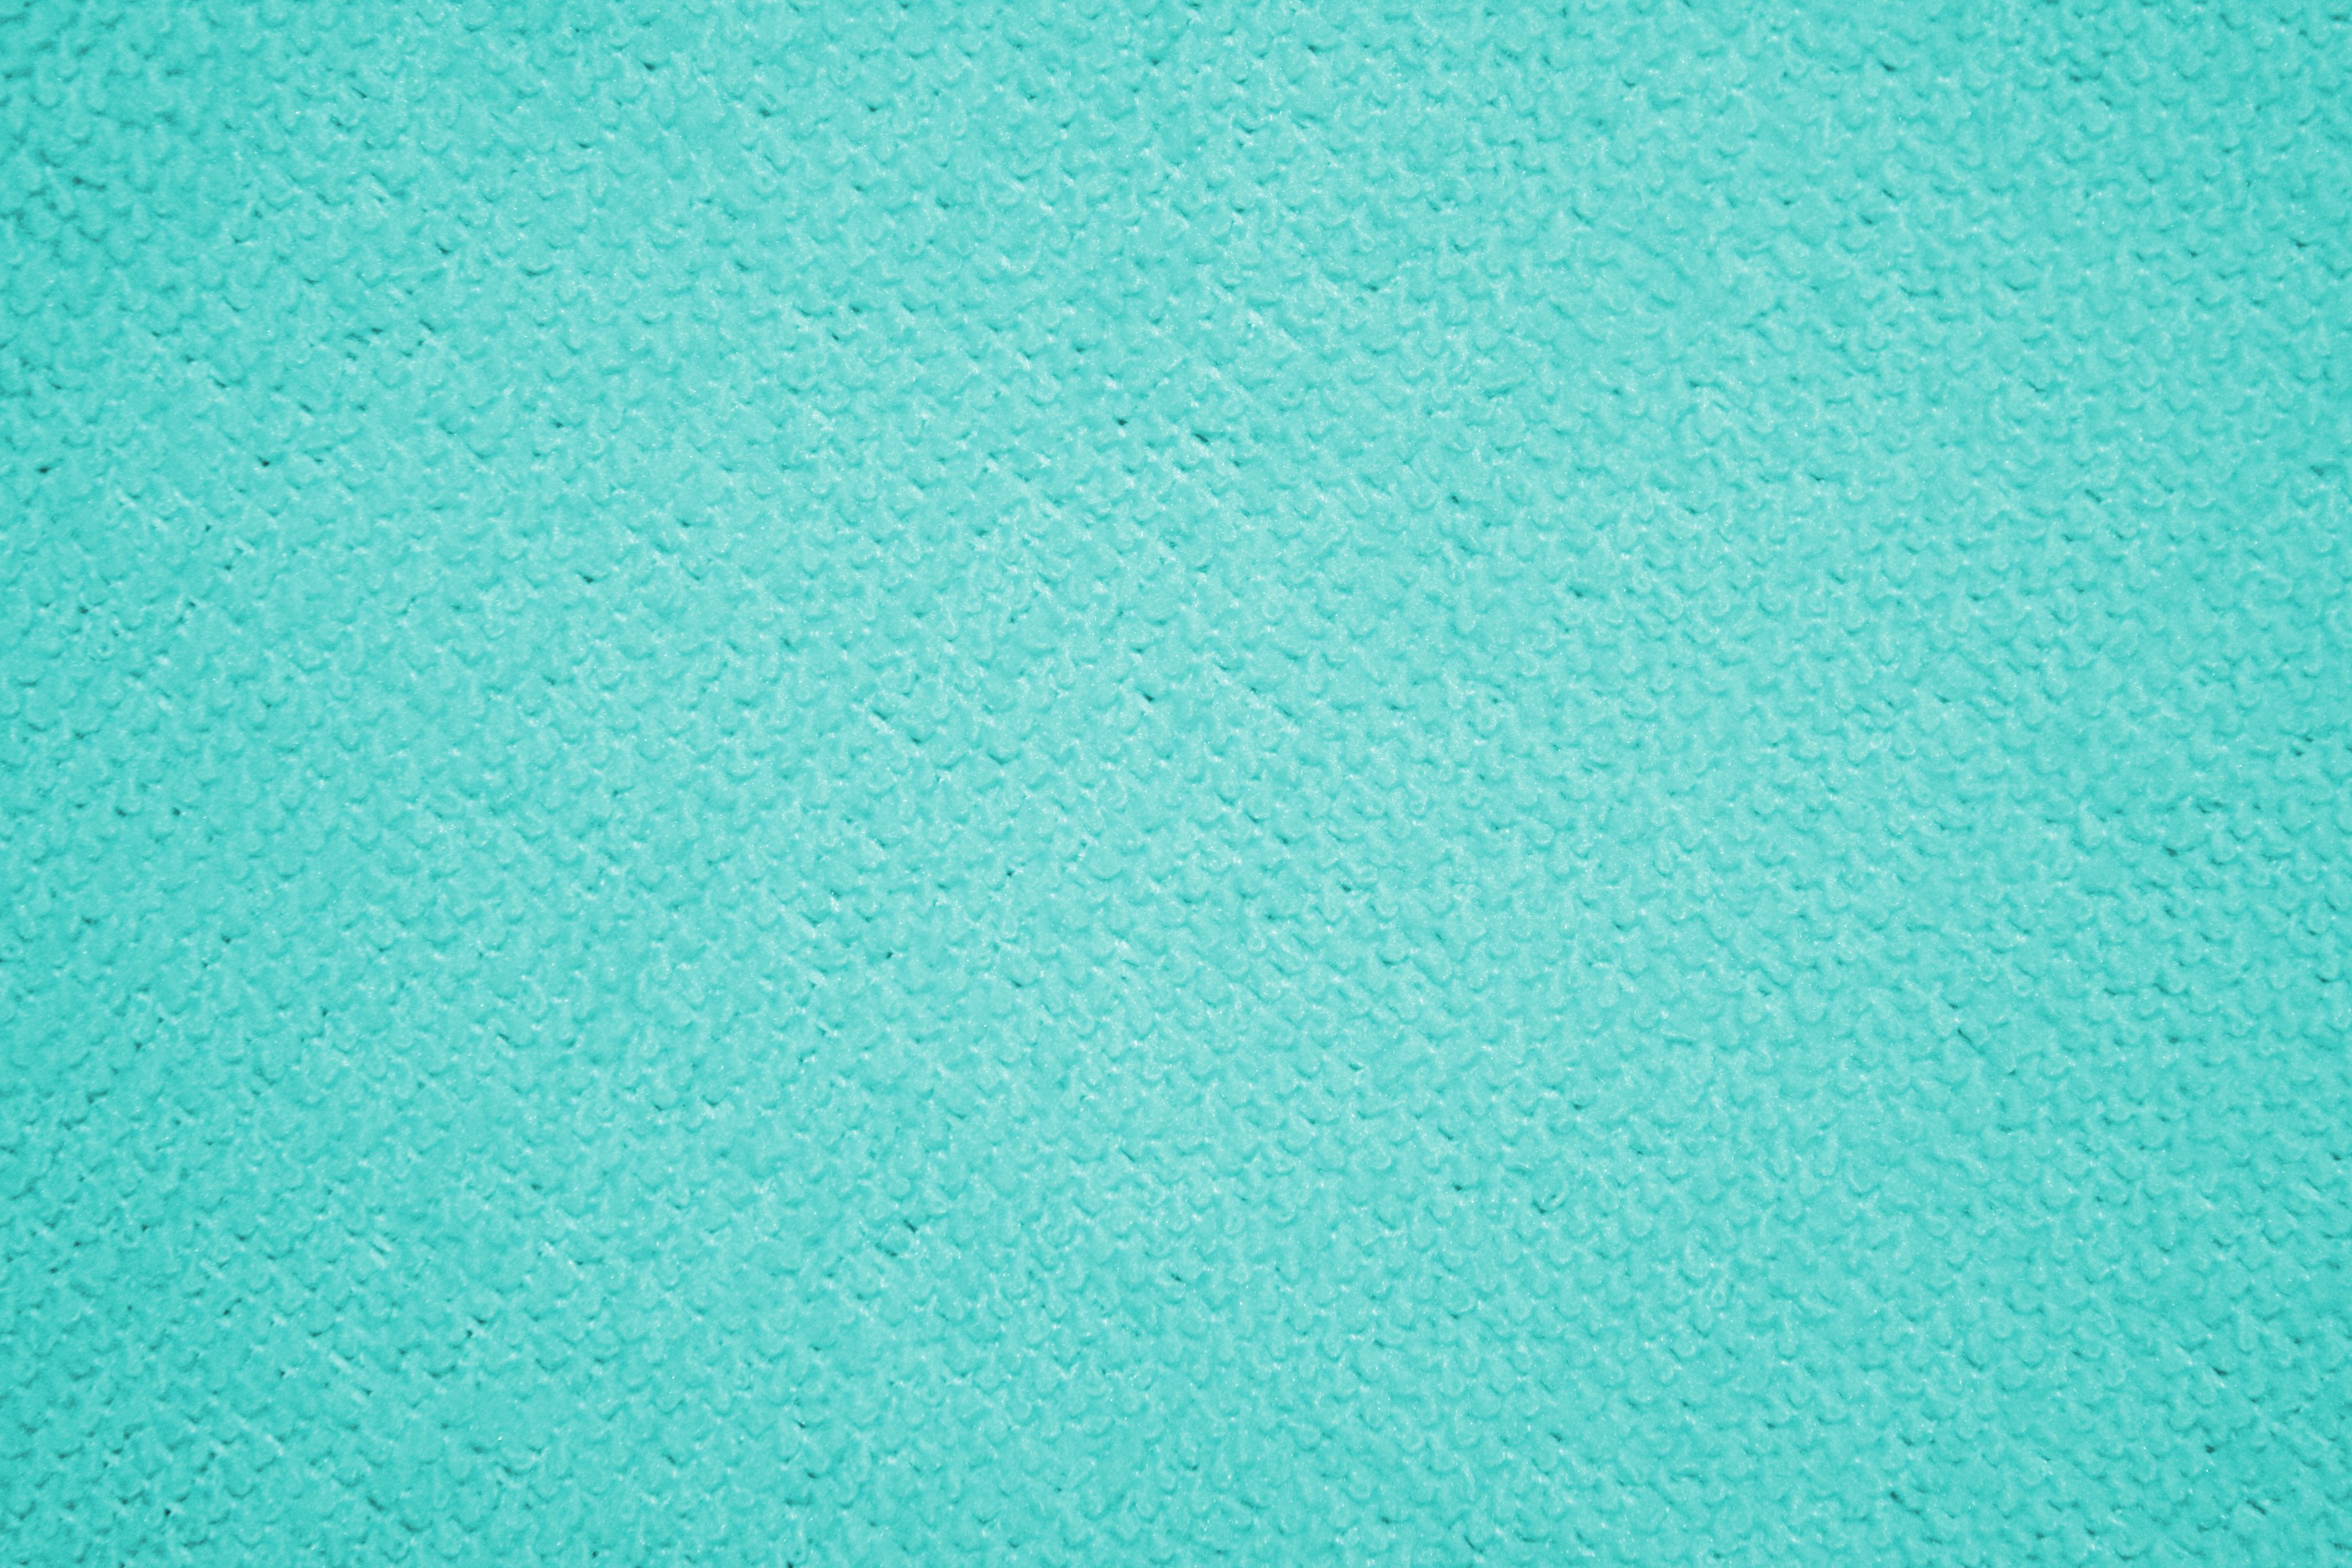 teal microfiber cloth fabric